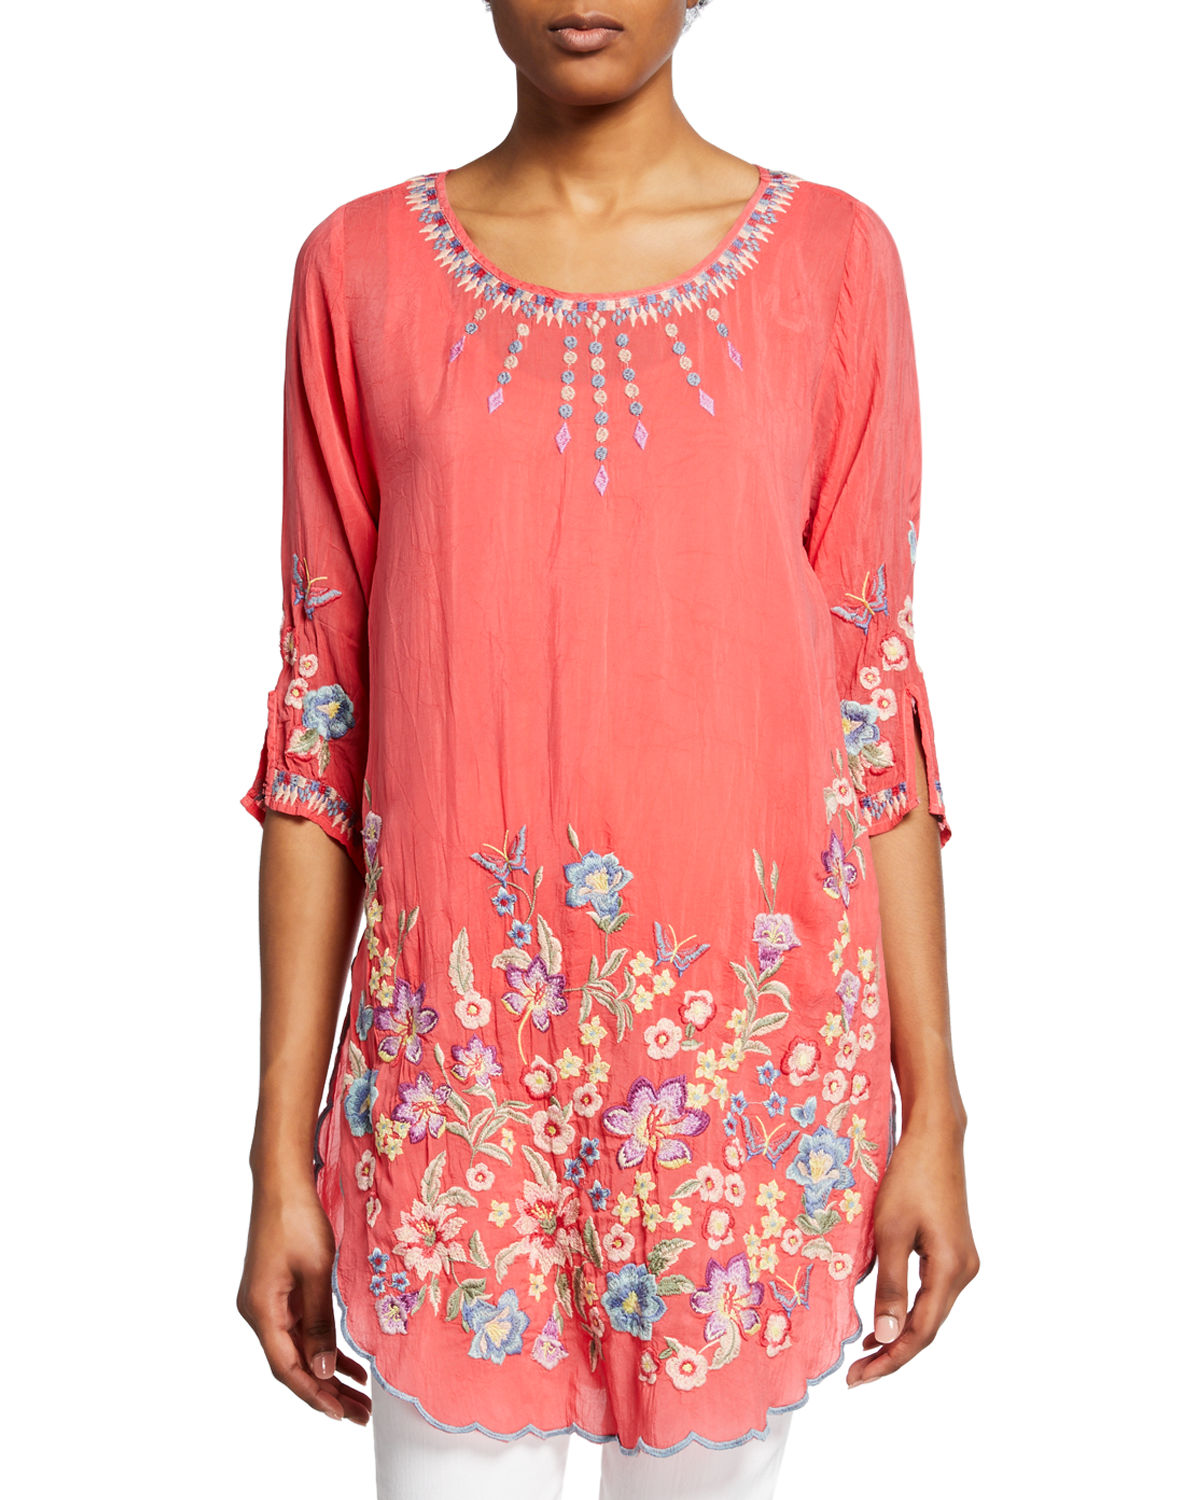 Johnny Was Tops MARIN FLORAL-EMBROIDERED SCOOP-NECK HALF-SLEEVE TUNIC